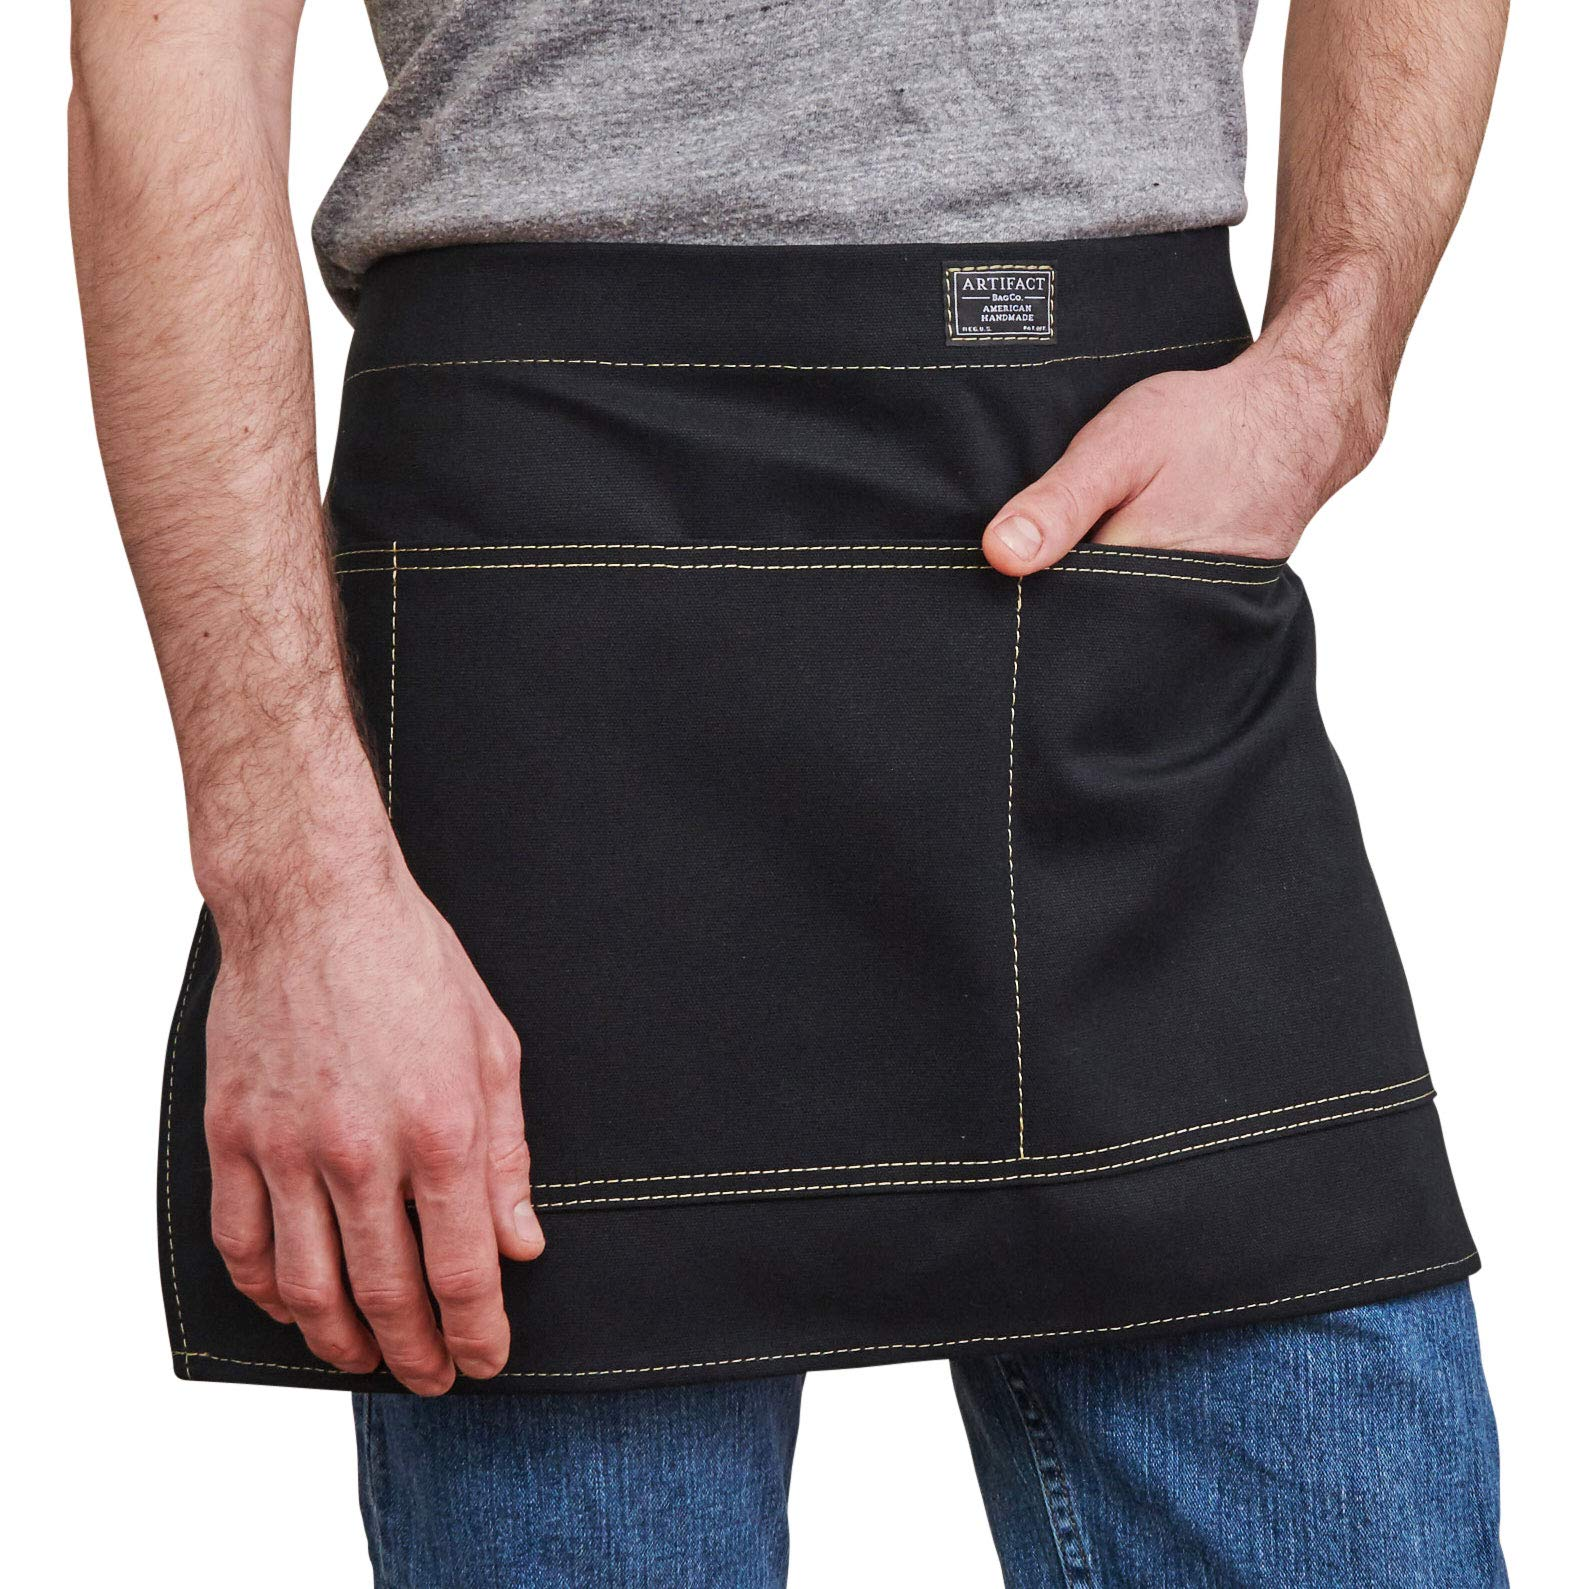 CDM product Artifact Unisex Artisan Canvas Waist Apron - Made in Omaha (Black) small thumbnail image